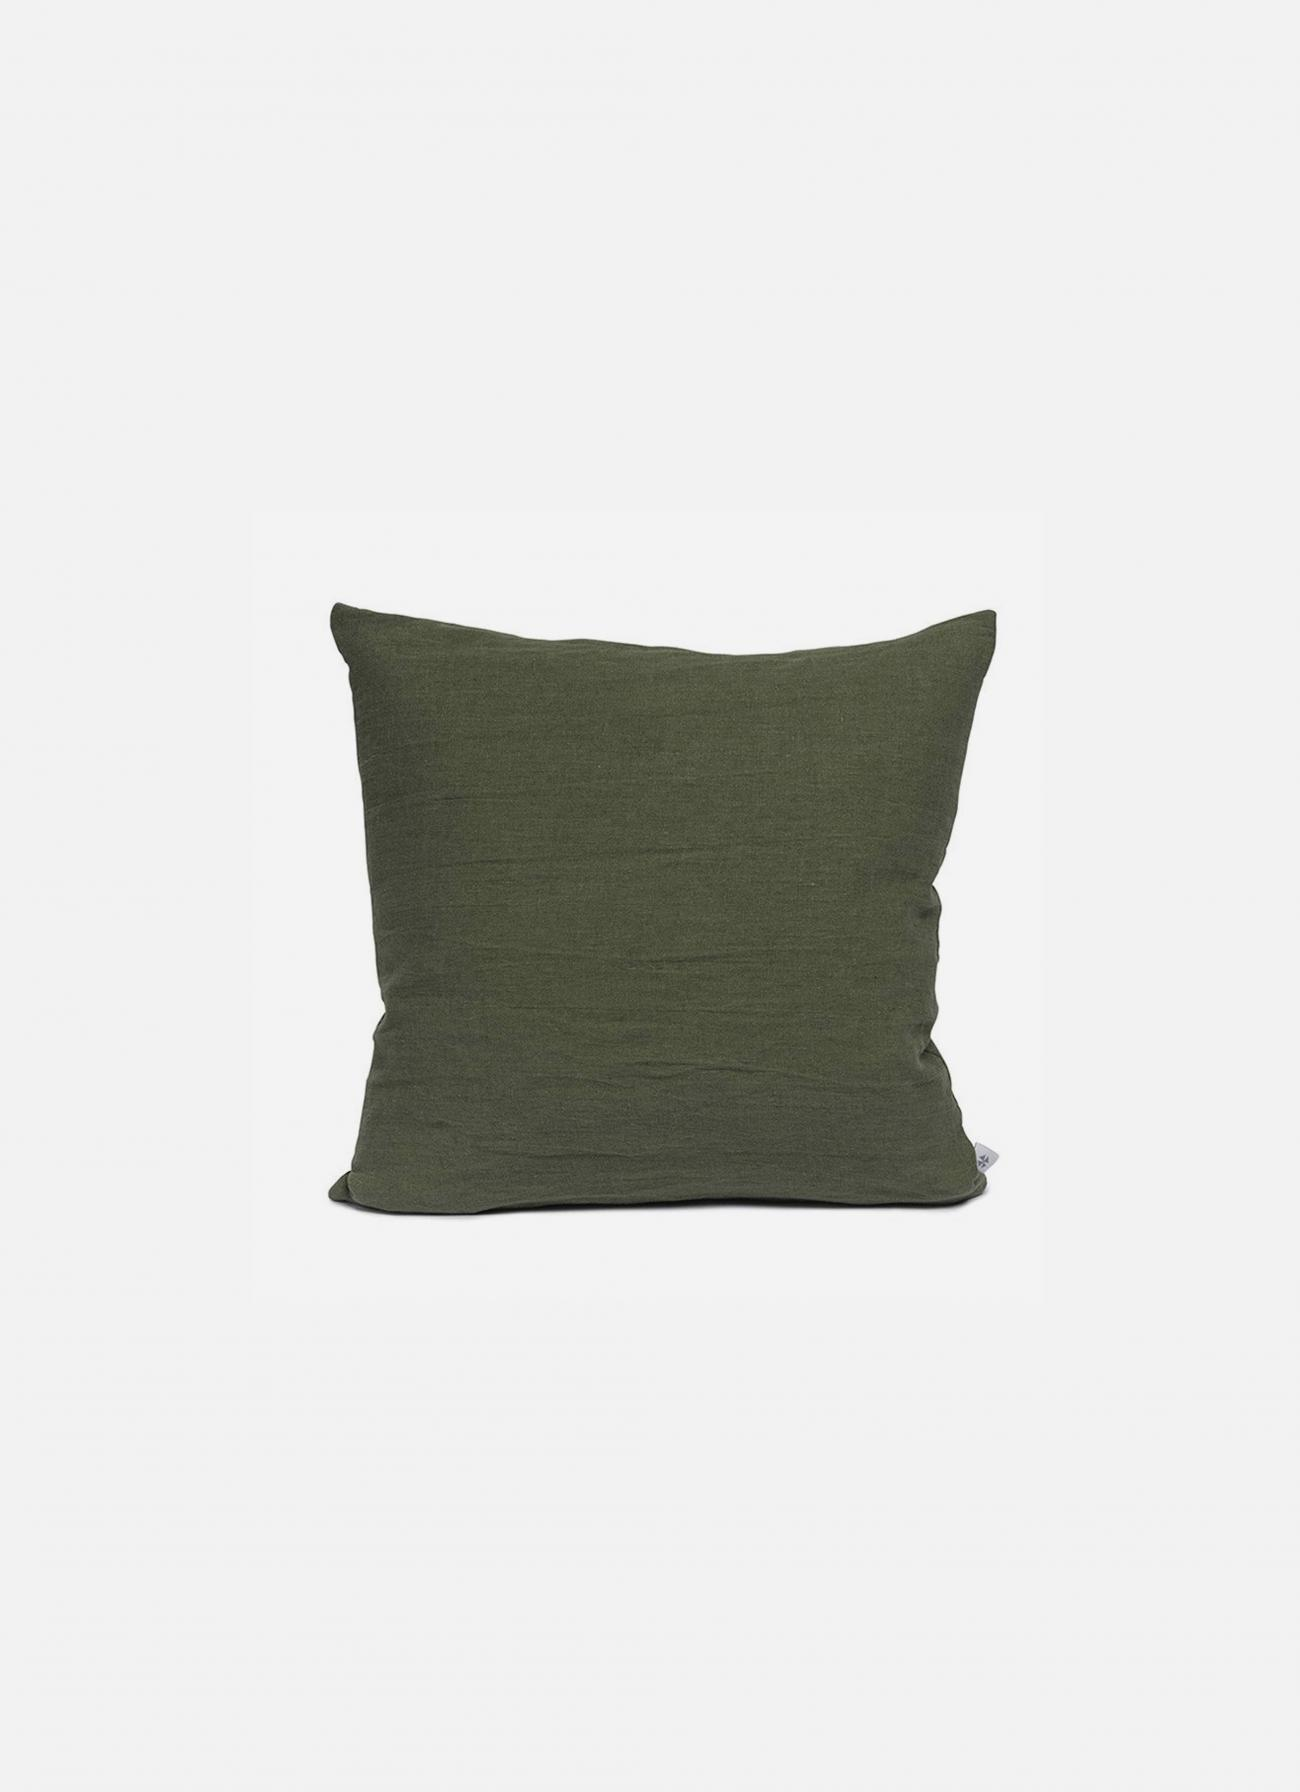 By Mölle - Linen cushion - moss green - 50x50cm